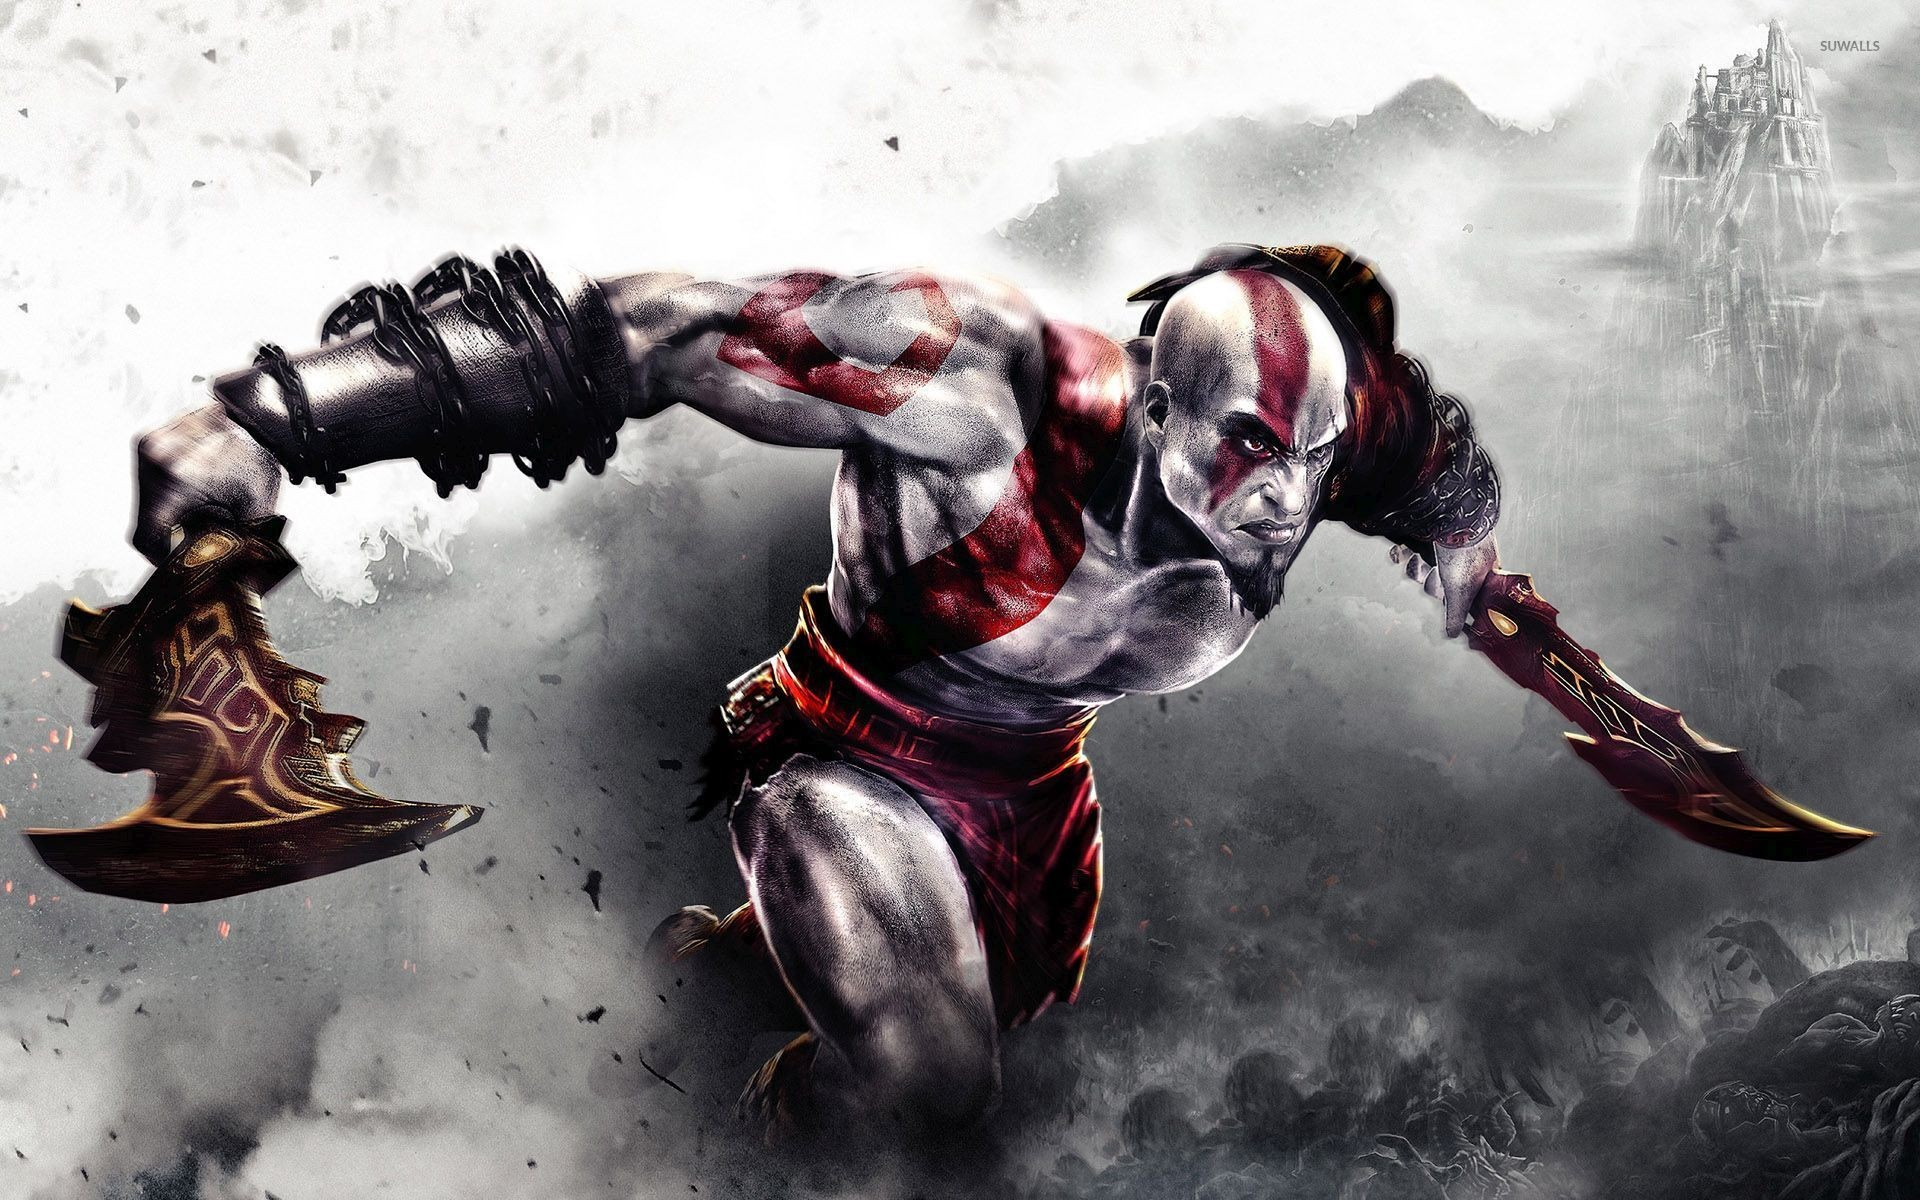 god of war wallpaper ·① download free full hd wallpapers for